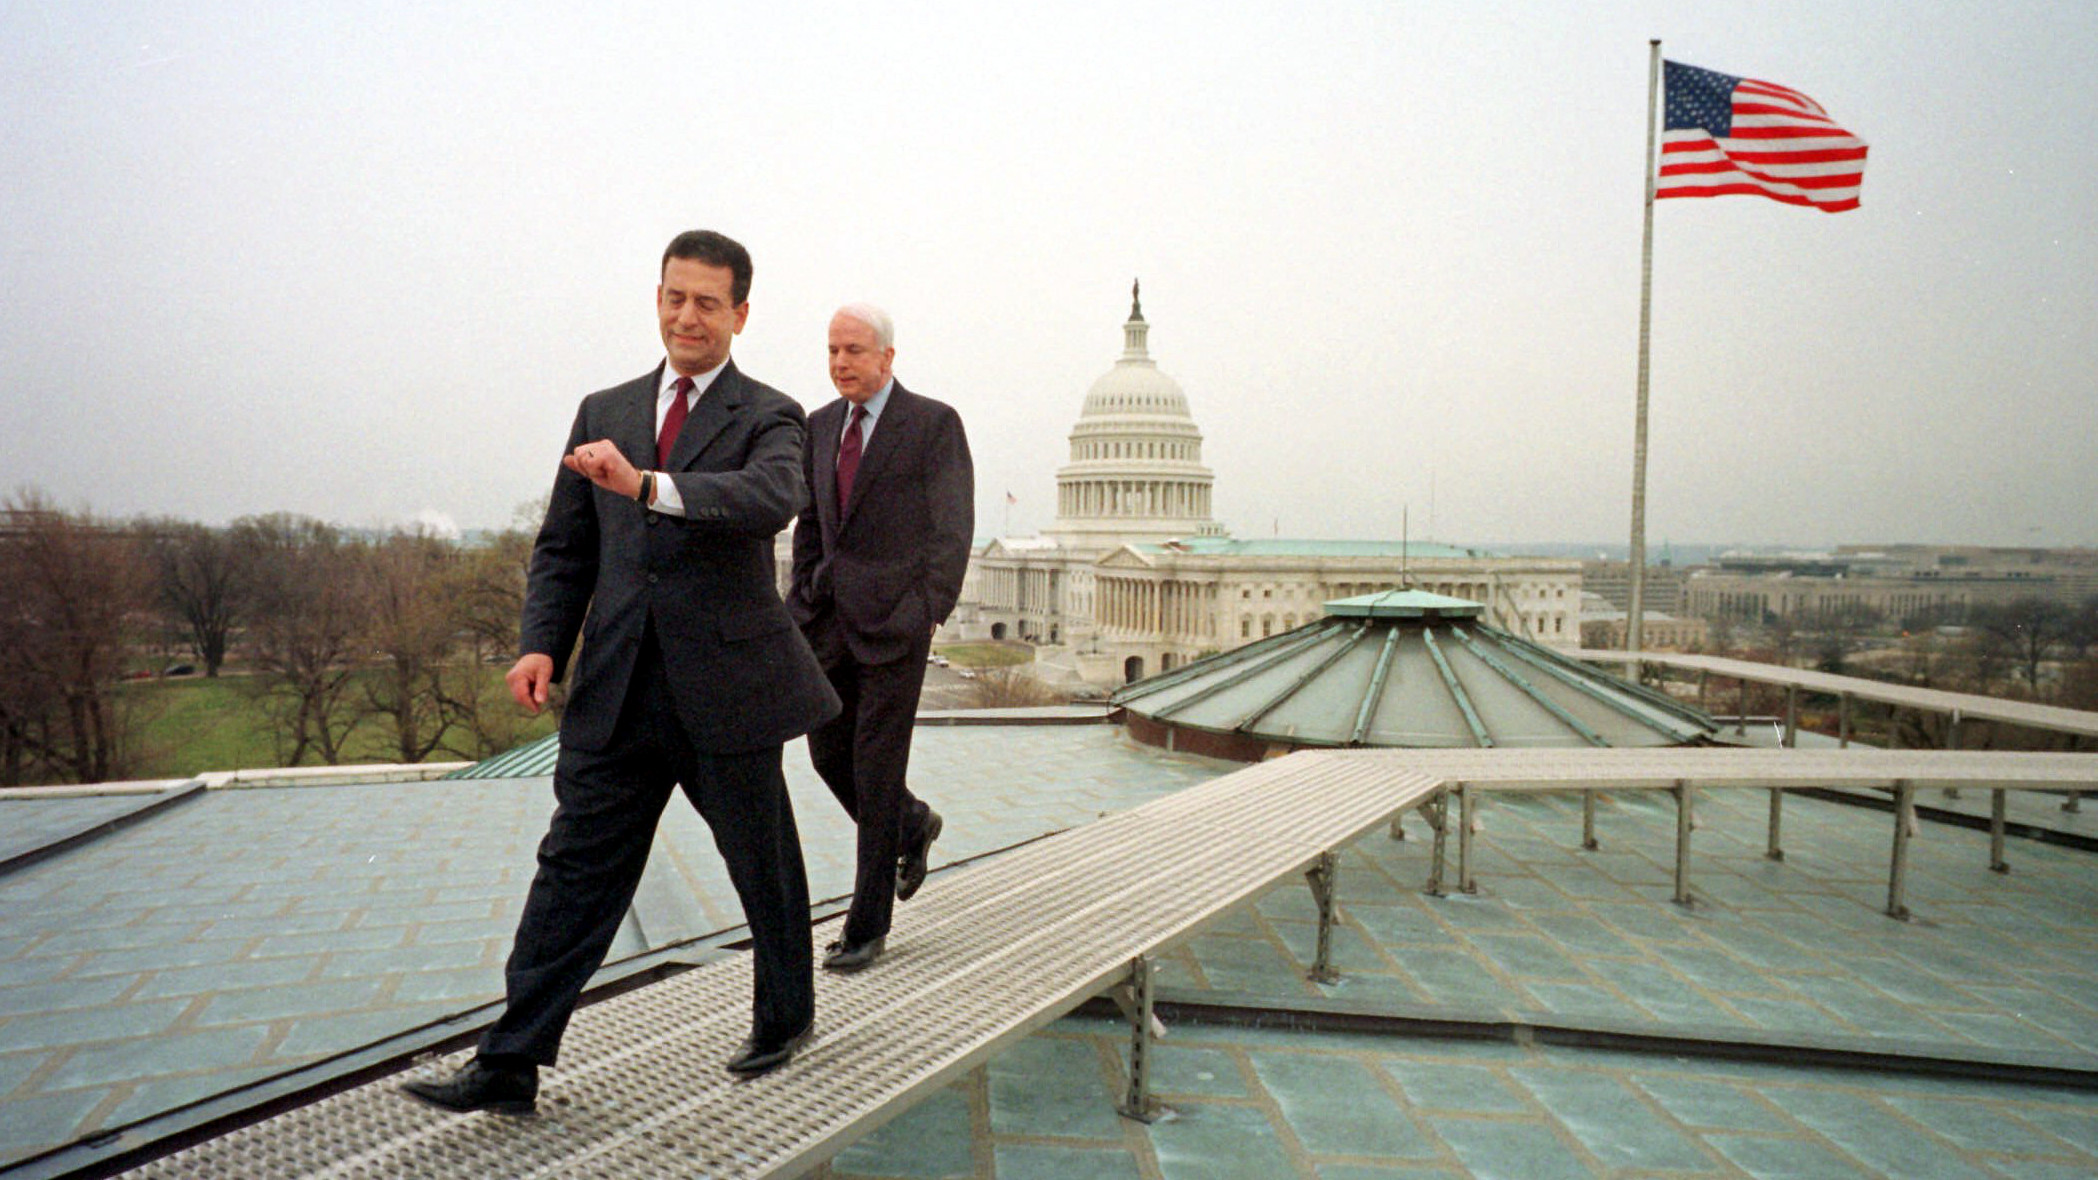 In this March 29, 2001 photo, U.S. Sen. Russ Feingold, D-Wis, checks his watch as he and Sen. John McCain, R-Ariz., walk off the roof of the Russell office building on Capitol Hill after an early morning Time Magazine photo session Thursday morning March 29, 2001 in Washington.